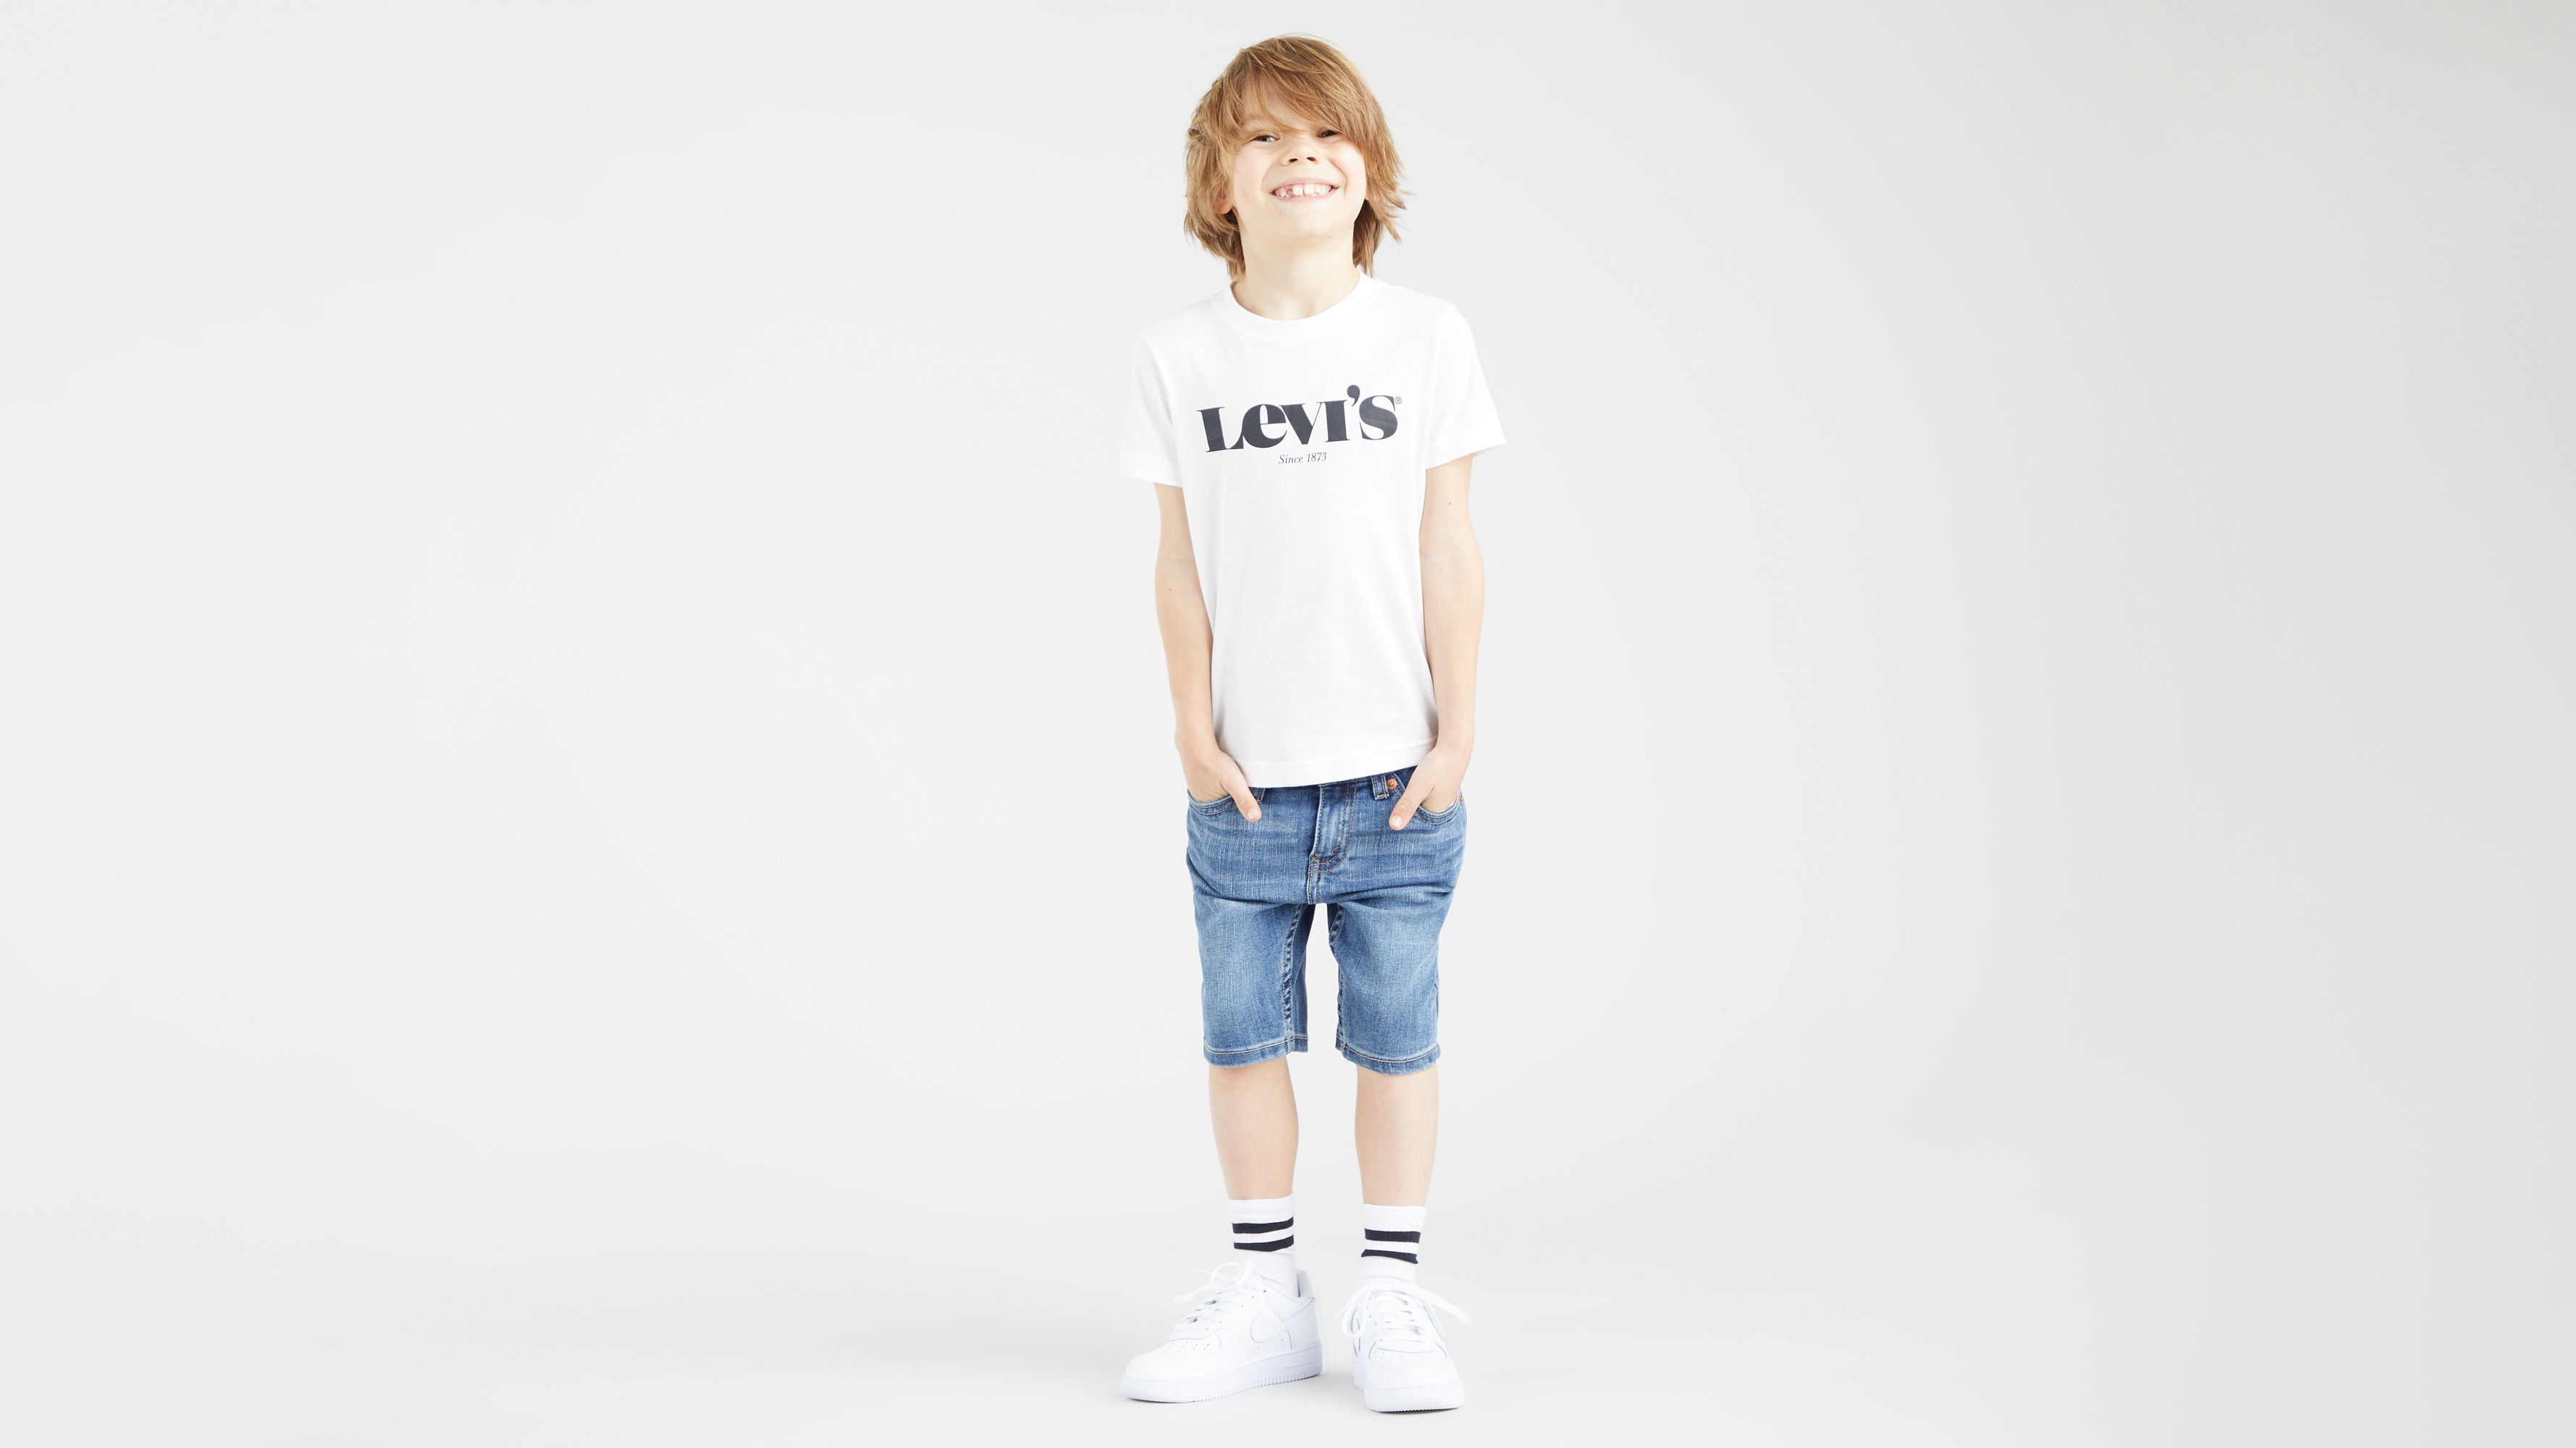 Details about  /Levi/'s San Francisco Youth T-Shirt Logo Graphic White Shirt Large 12-13 years